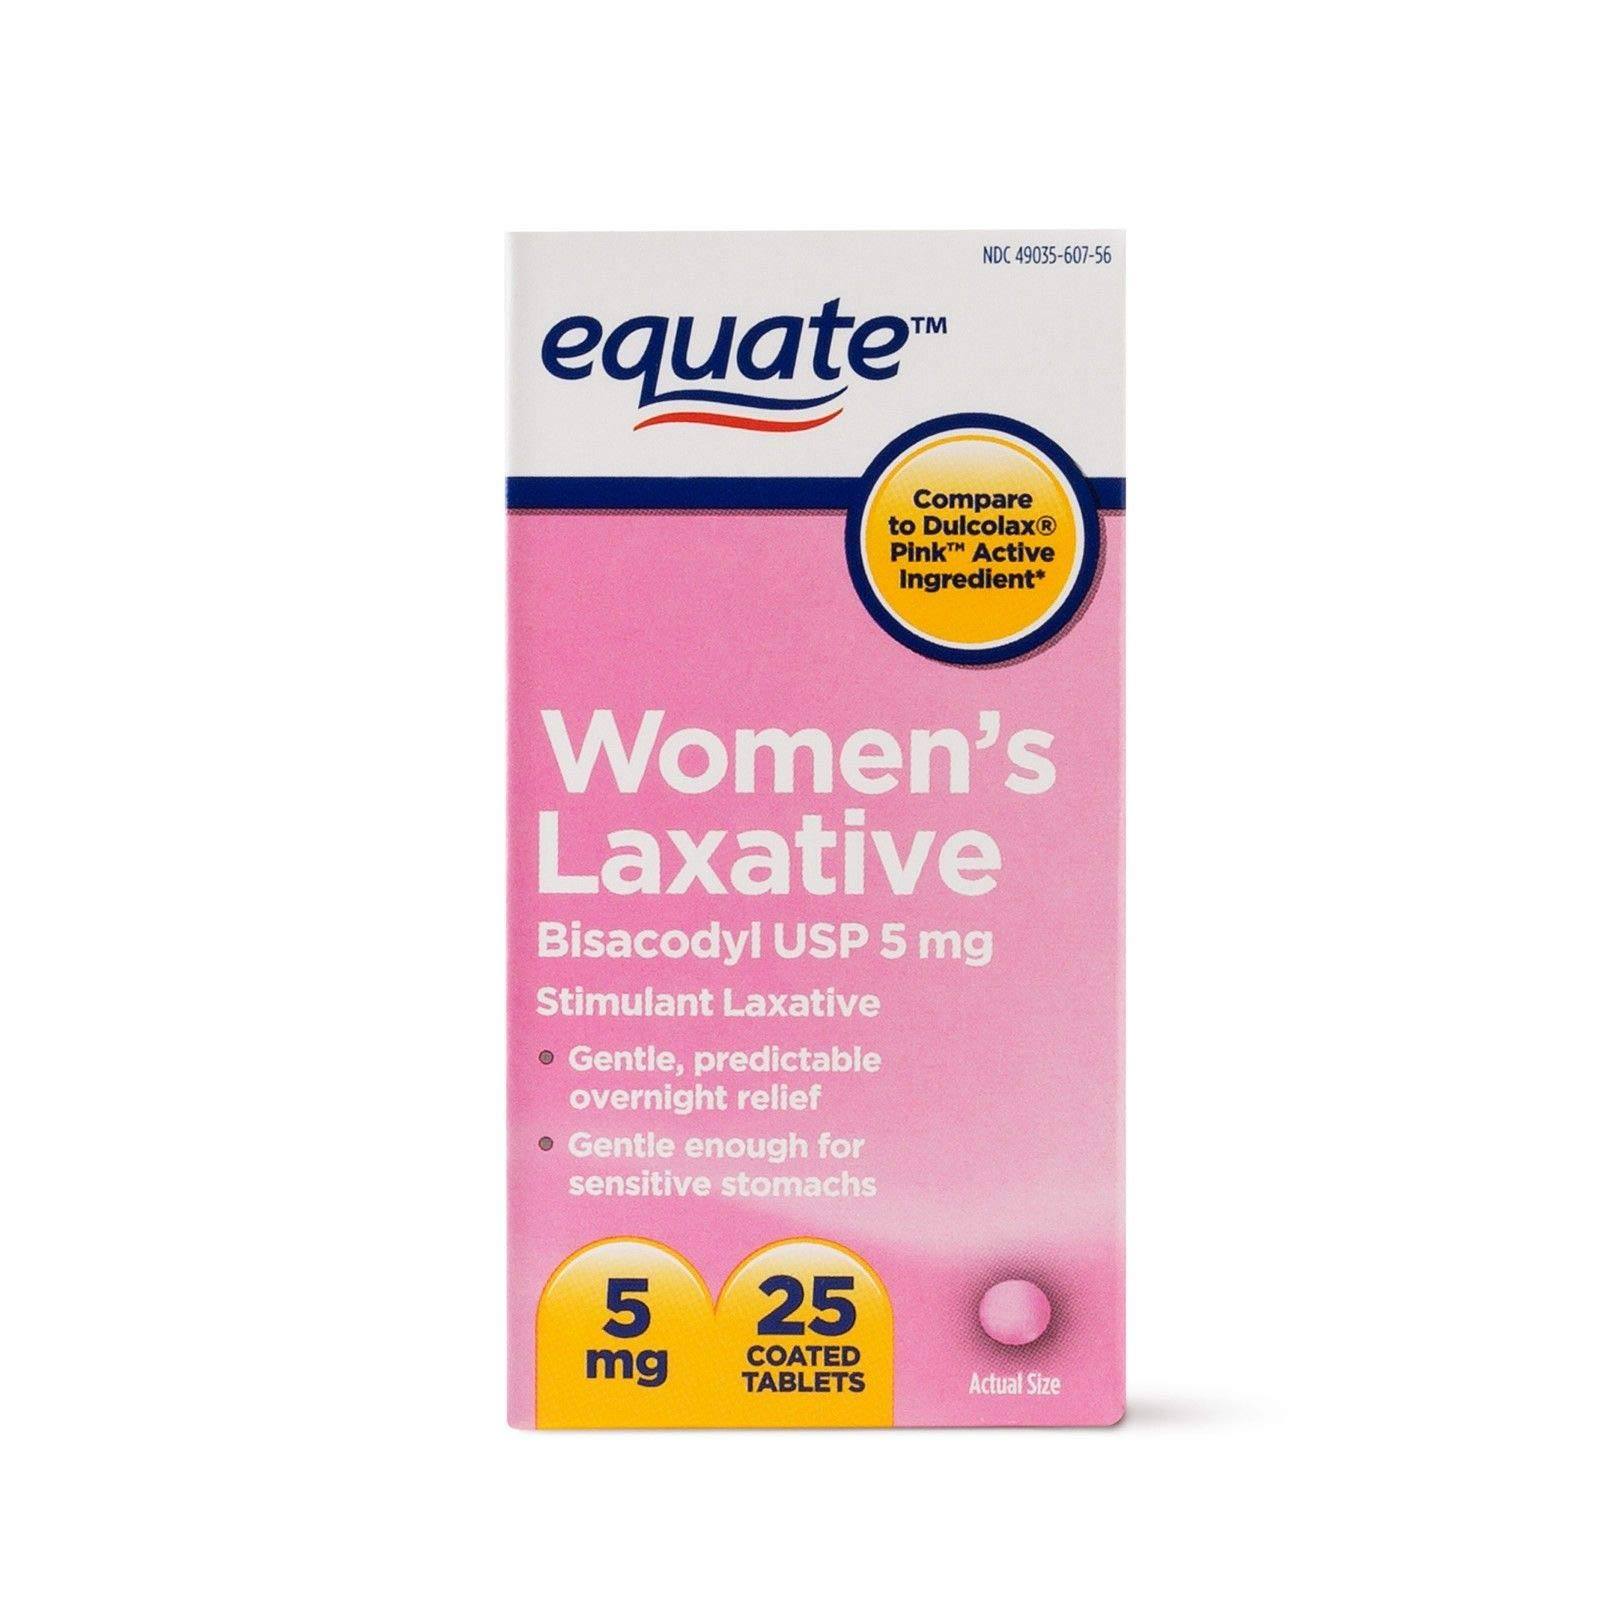 Equate Women's Laxative Bisacodyl USP 5mg